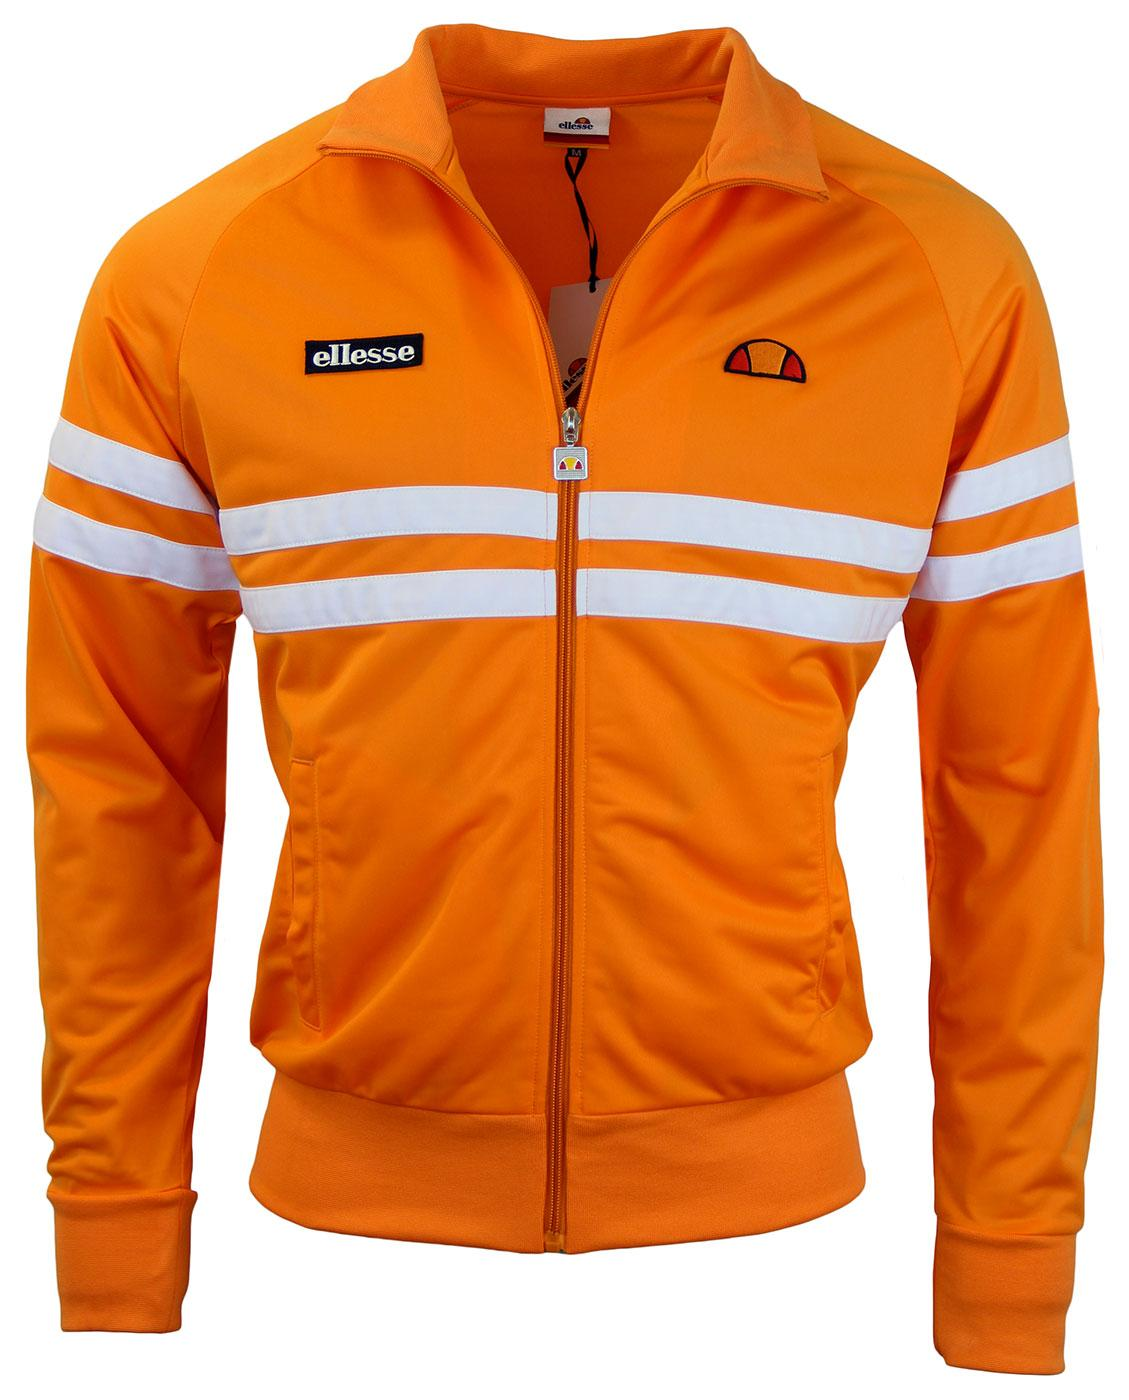 Rimini 2 ELLESSE Retro 80s Chest Stripe Track Top